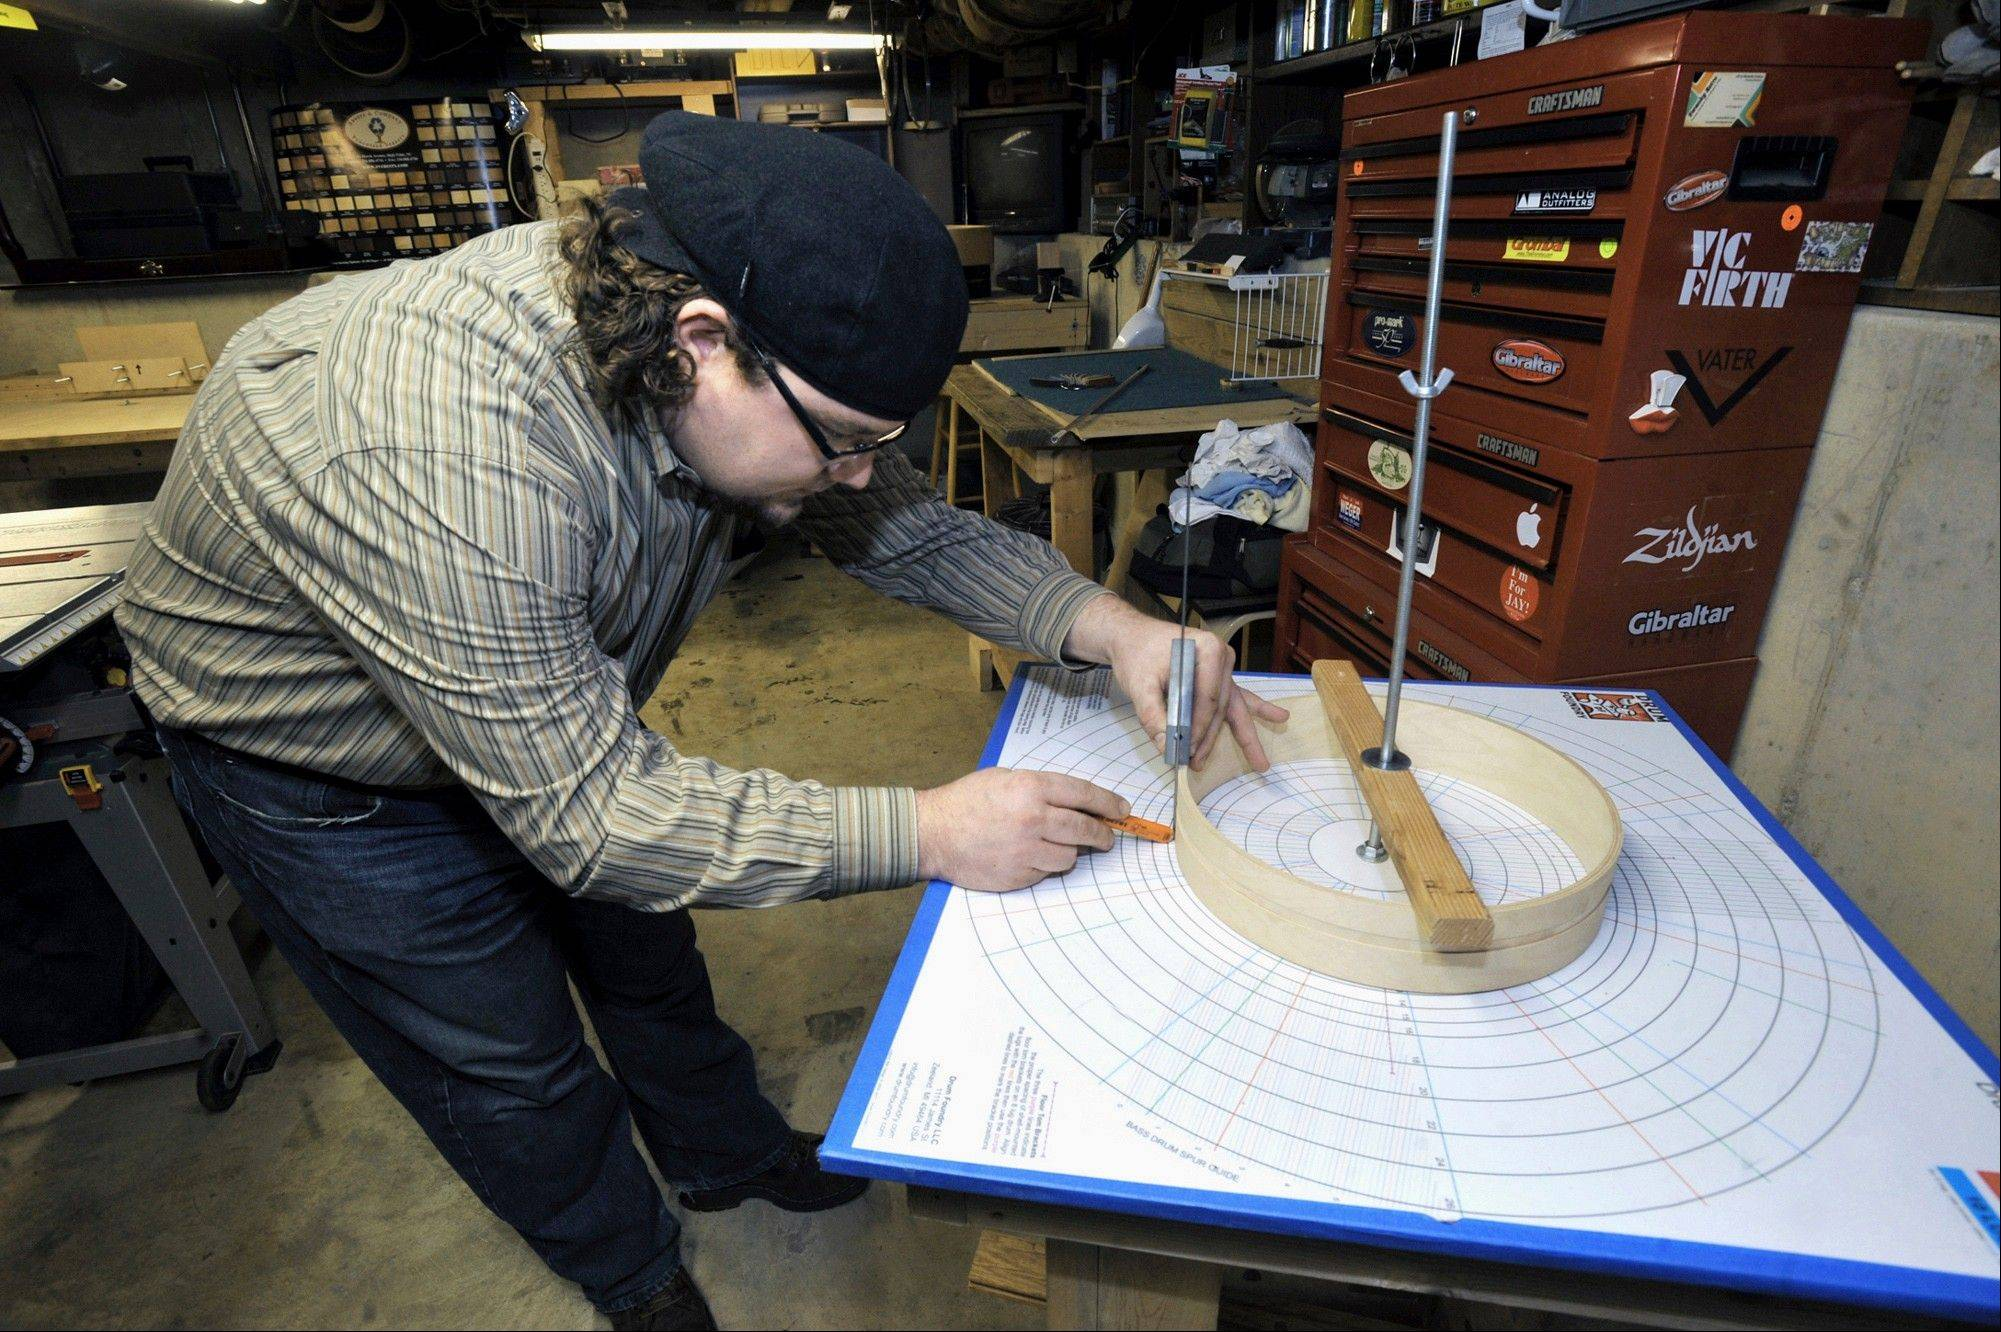 Drum maker Jay Ferguson demonstrates the use of the drum shell layout table in the workshop.